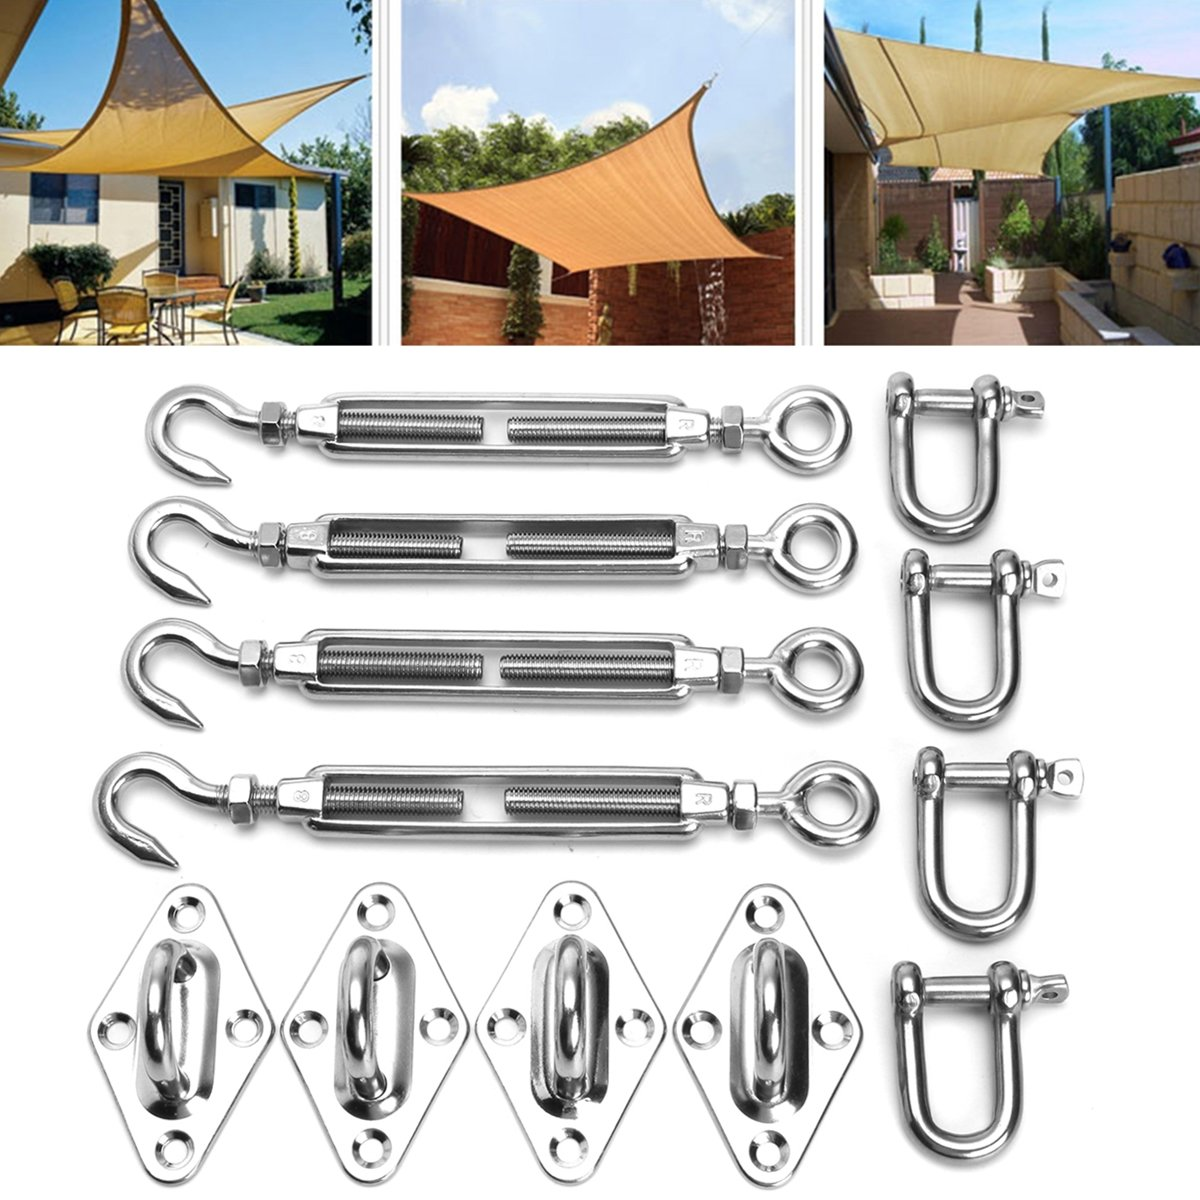 KINGSO 12pcs 8mm Stainless Steel Sun Shade Sail Accessory Kit Four Wall Fixing Mounting Marine Grade Shade Sail Hardware Kit Triangle Sun Shade Sail Installation 1500 LB by KingSo